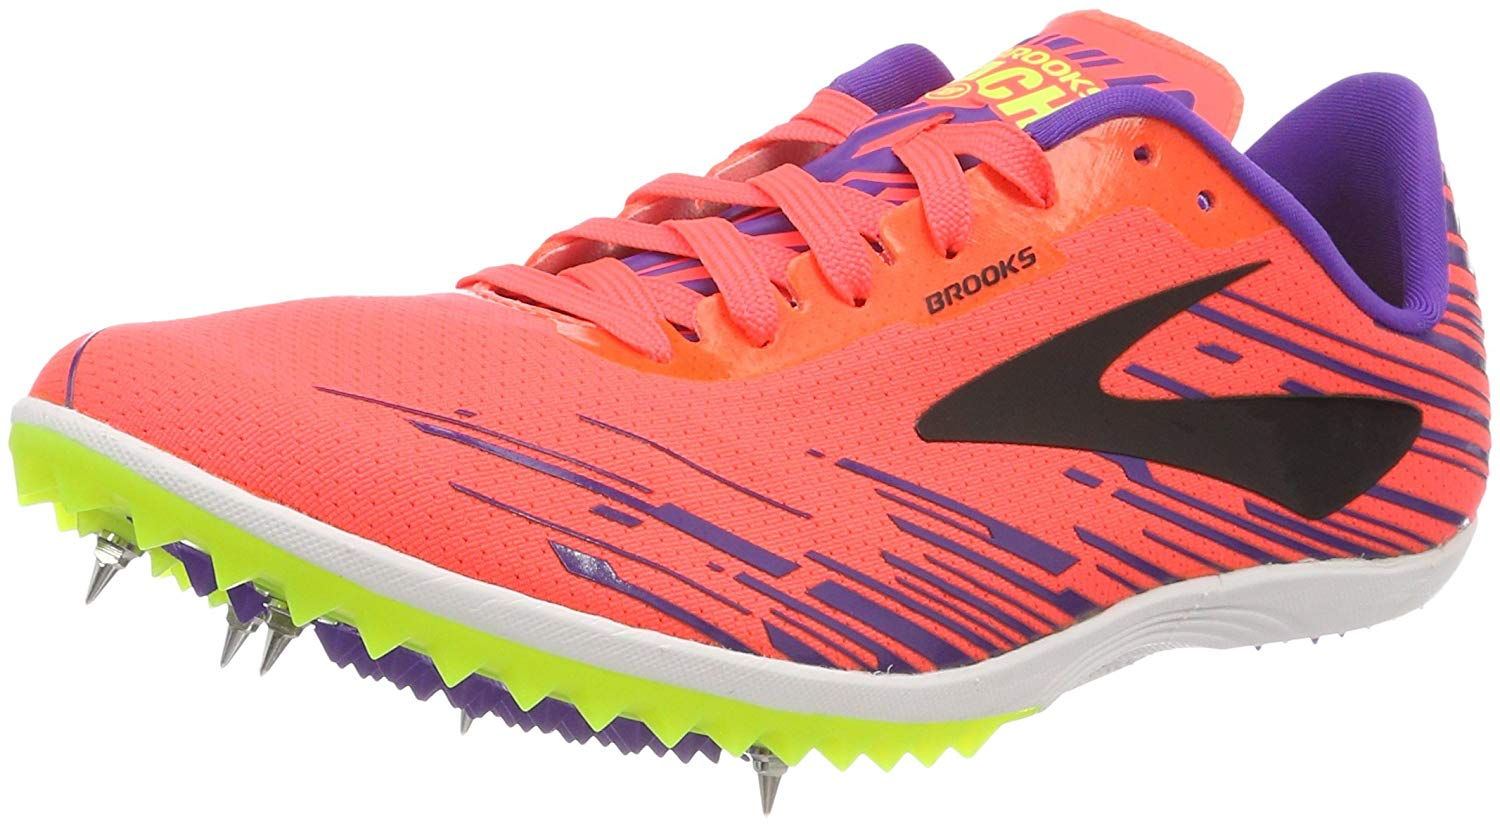 Cheap Brooks Cross Country Spikes, find